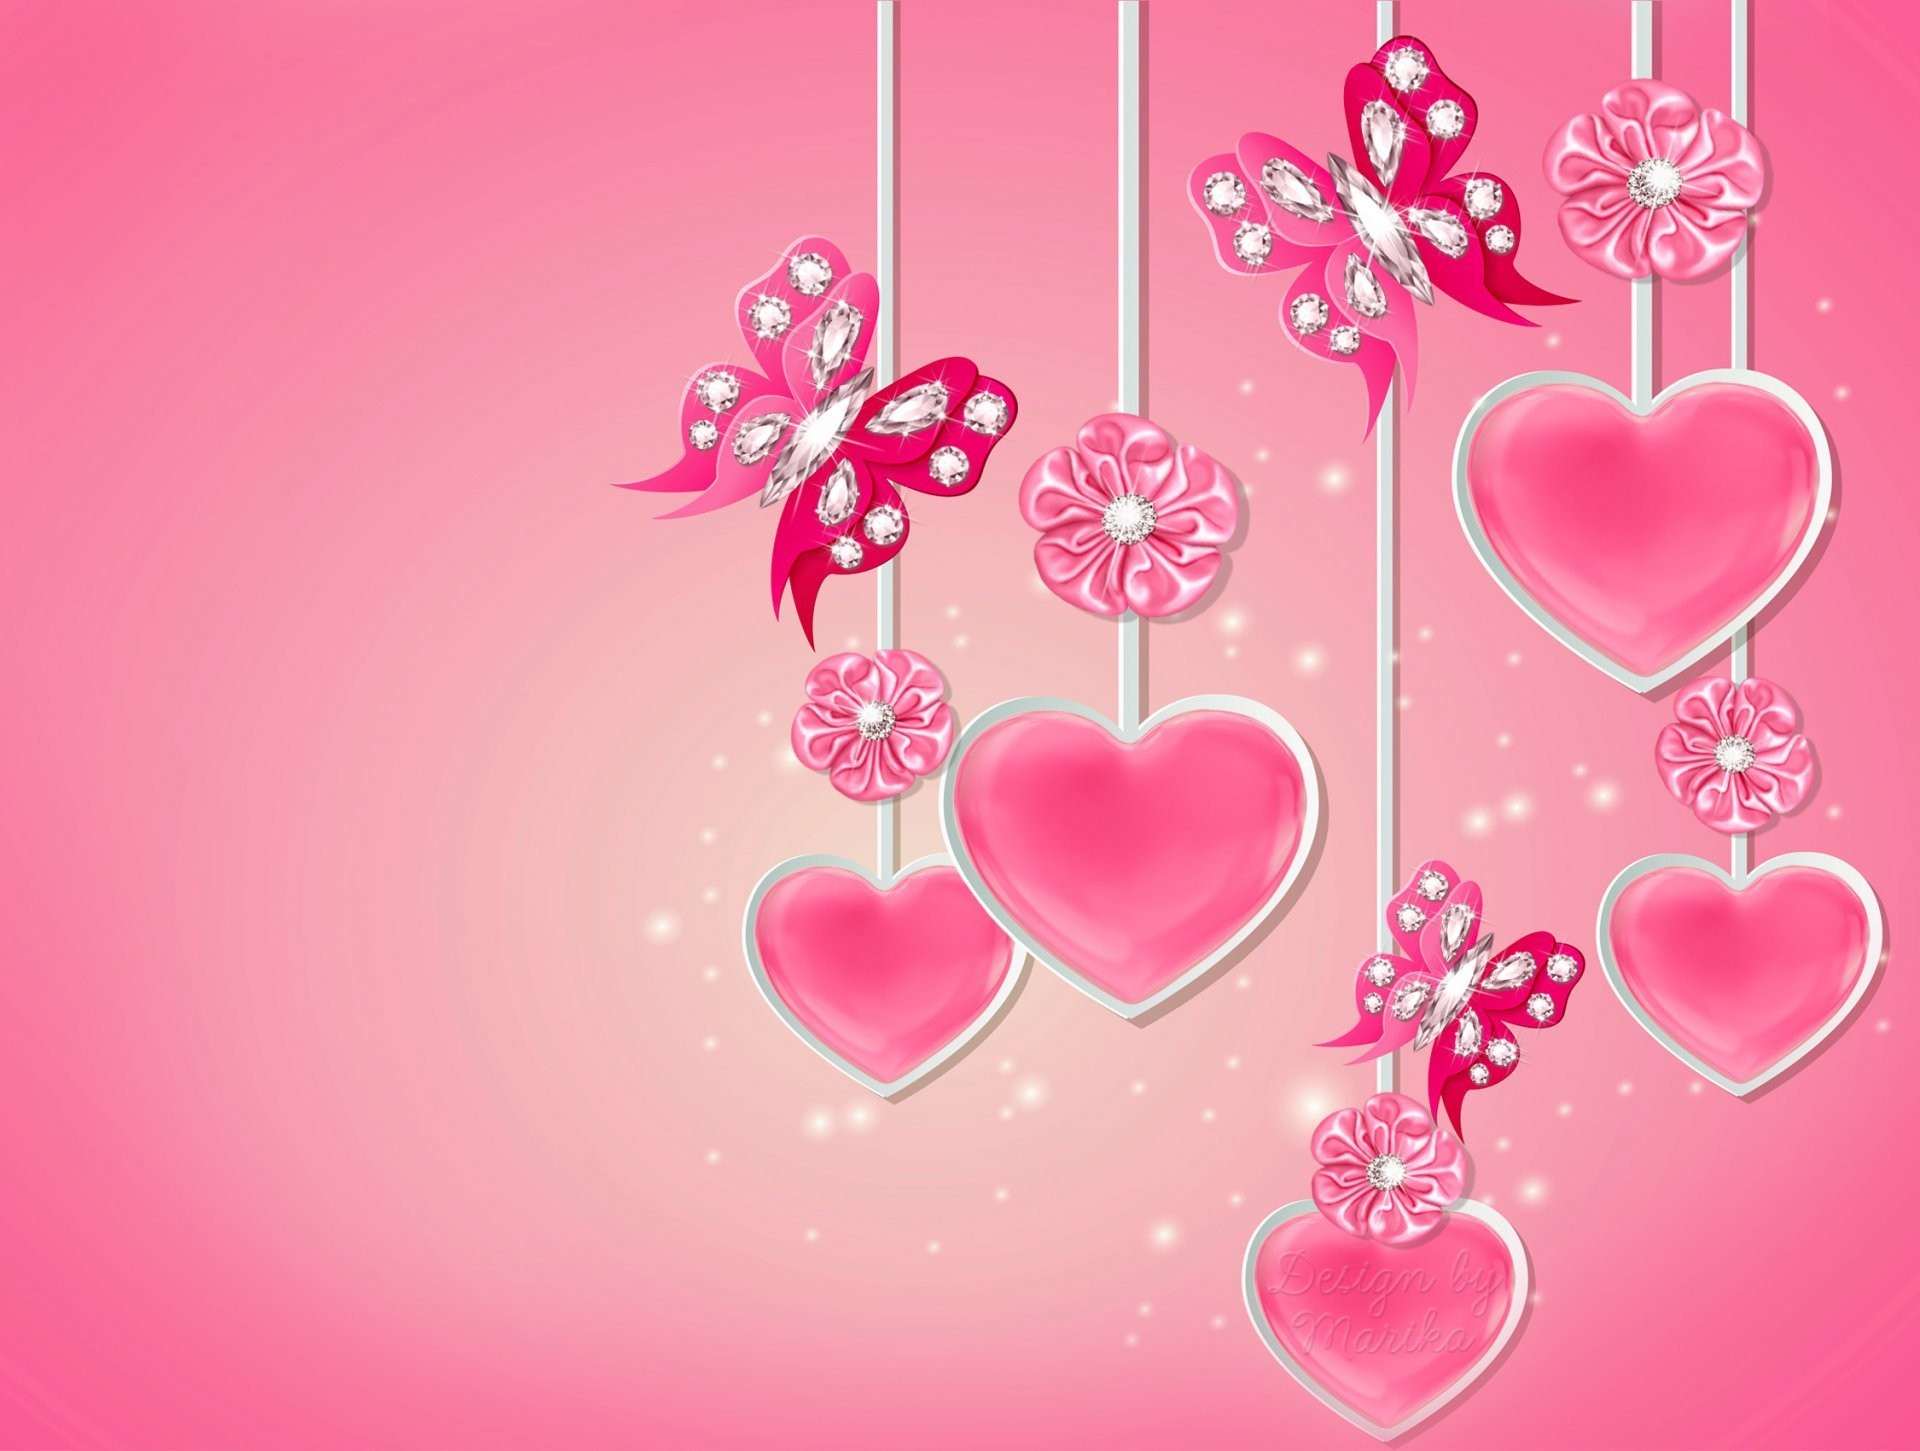 Pink Love Heart Backgrounds ??